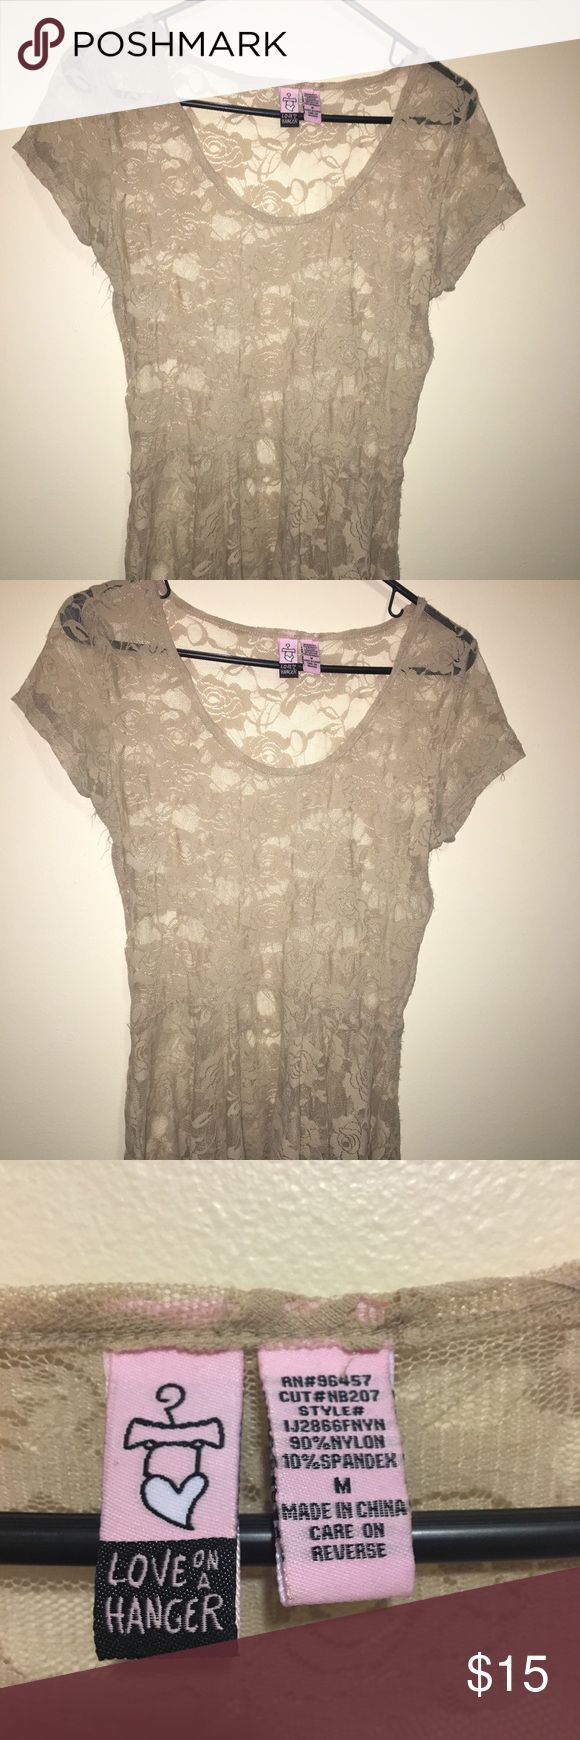 Love on a Hanger Peplum Cream Lace Top M Pre-Owned Love on a Hanger Peplum Cream Lace Top M in good condition. Can be worn as a beach cover up or wear with a tank top under.  Comes From Smoke Free Home Love On A Hanger Tops Tees - Short Sleeve